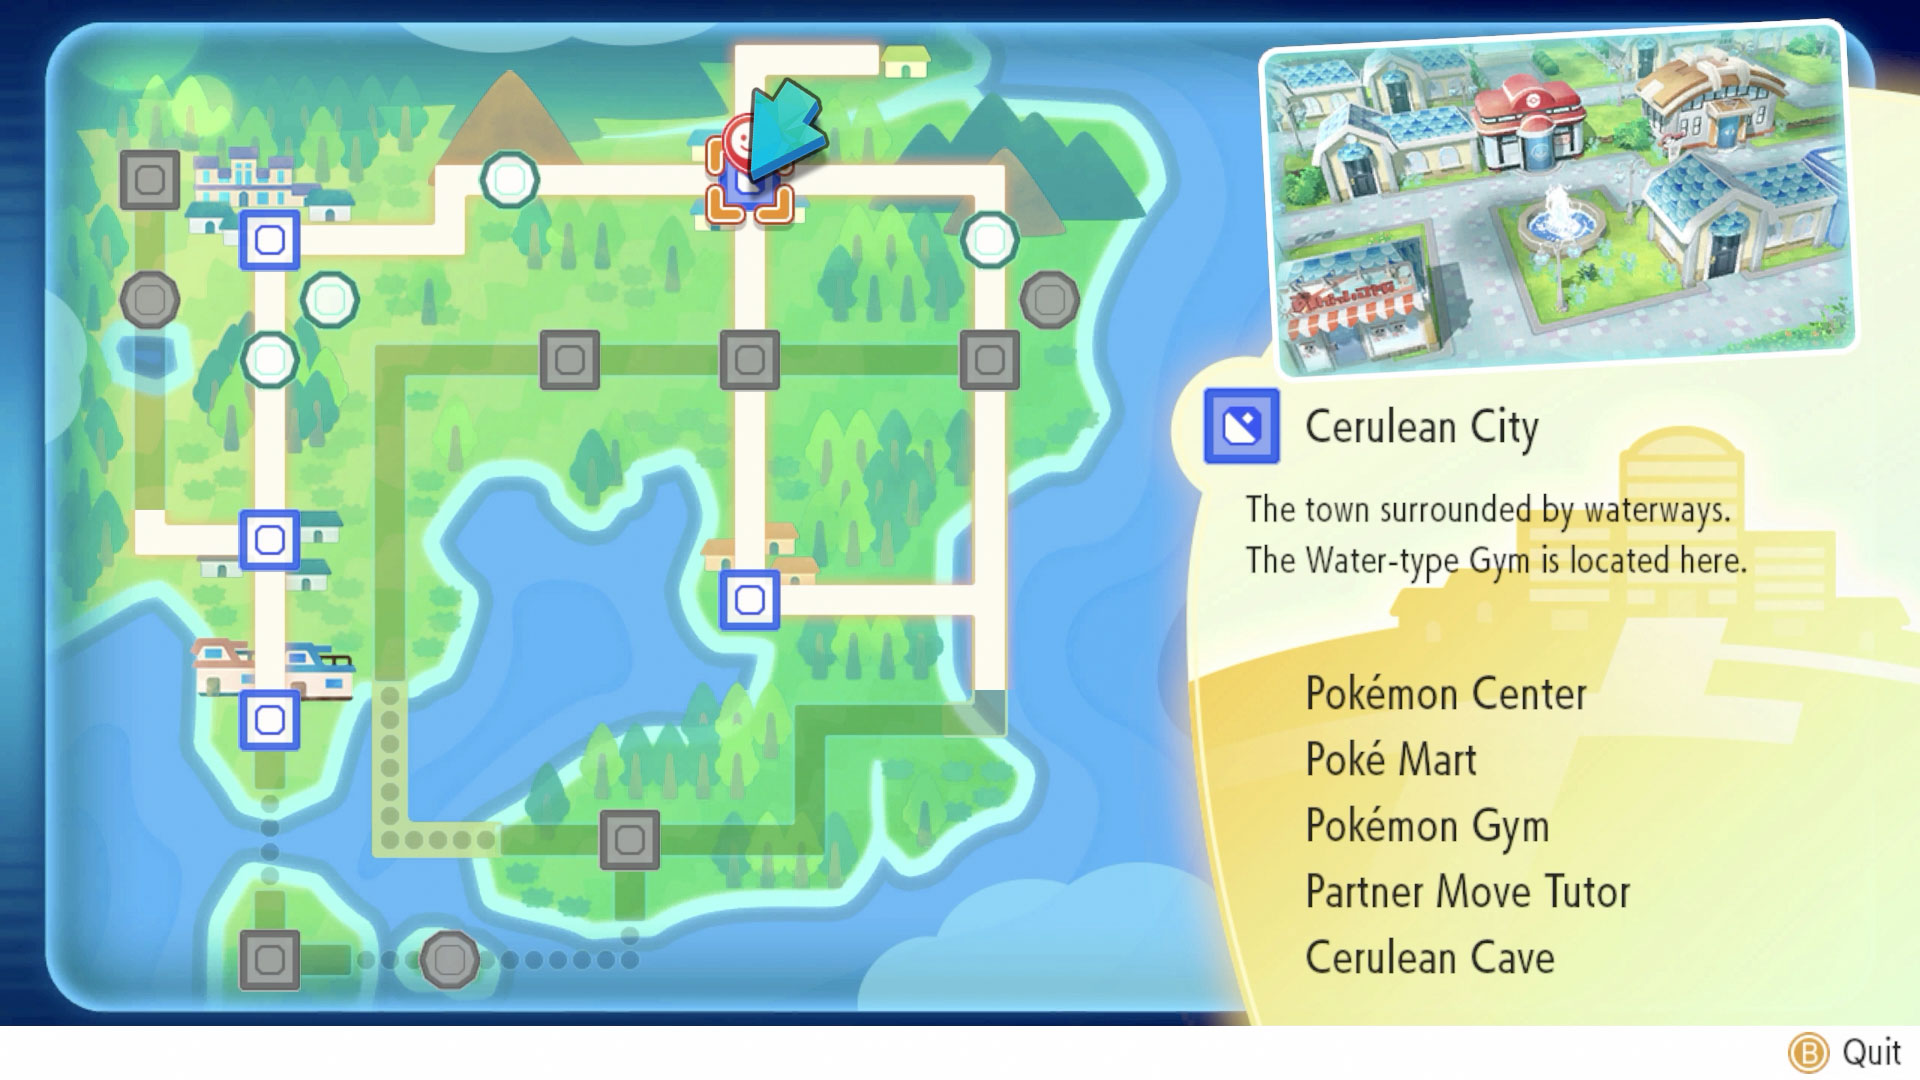 All Pokemon Map Location in Pokemon Let's Go Pikachu, Eevee ... on all of westeros maps, made up maps, google maps, simple risk maps, fishing maps, prank maps, dvd maps, dragon warrior monsters 2 maps, interesting maps, cool site maps, all the locations of the death camp maps, snes maps, jrpg maps, mmo maps, metro bus houston tx maps, cartography maps, epic d d maps, bully scholarship edition cheats maps, fictional maps, house maps,